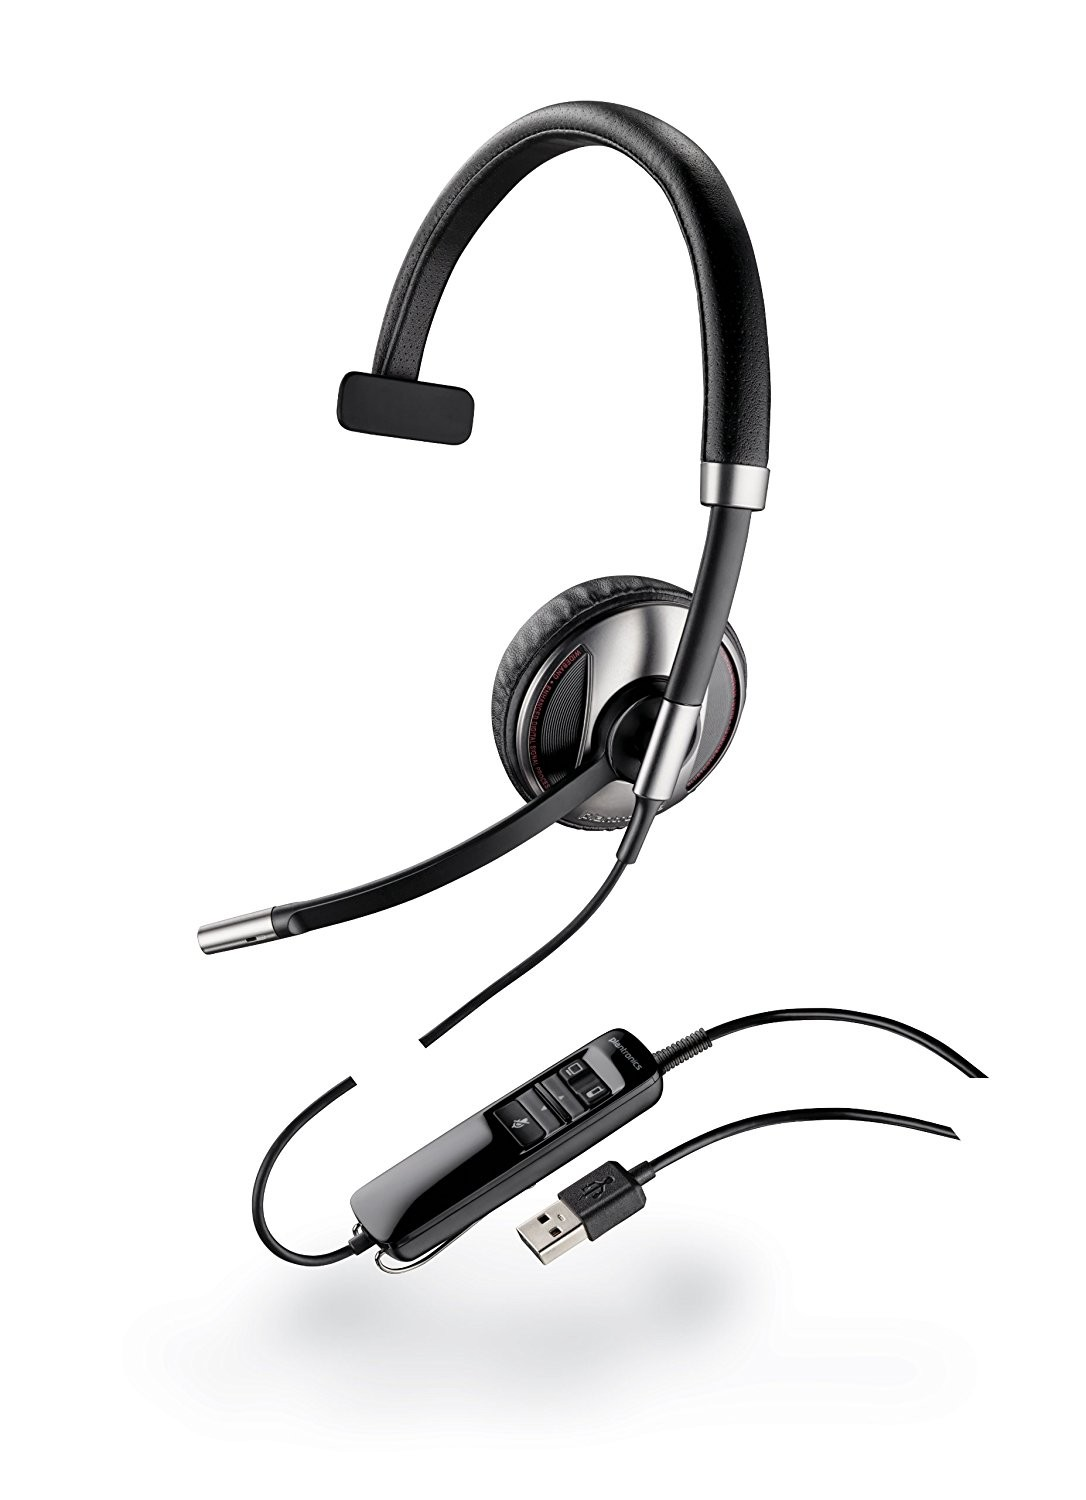 Plantronics Blackwire C710-M Monaural USB Bluetooth Headset